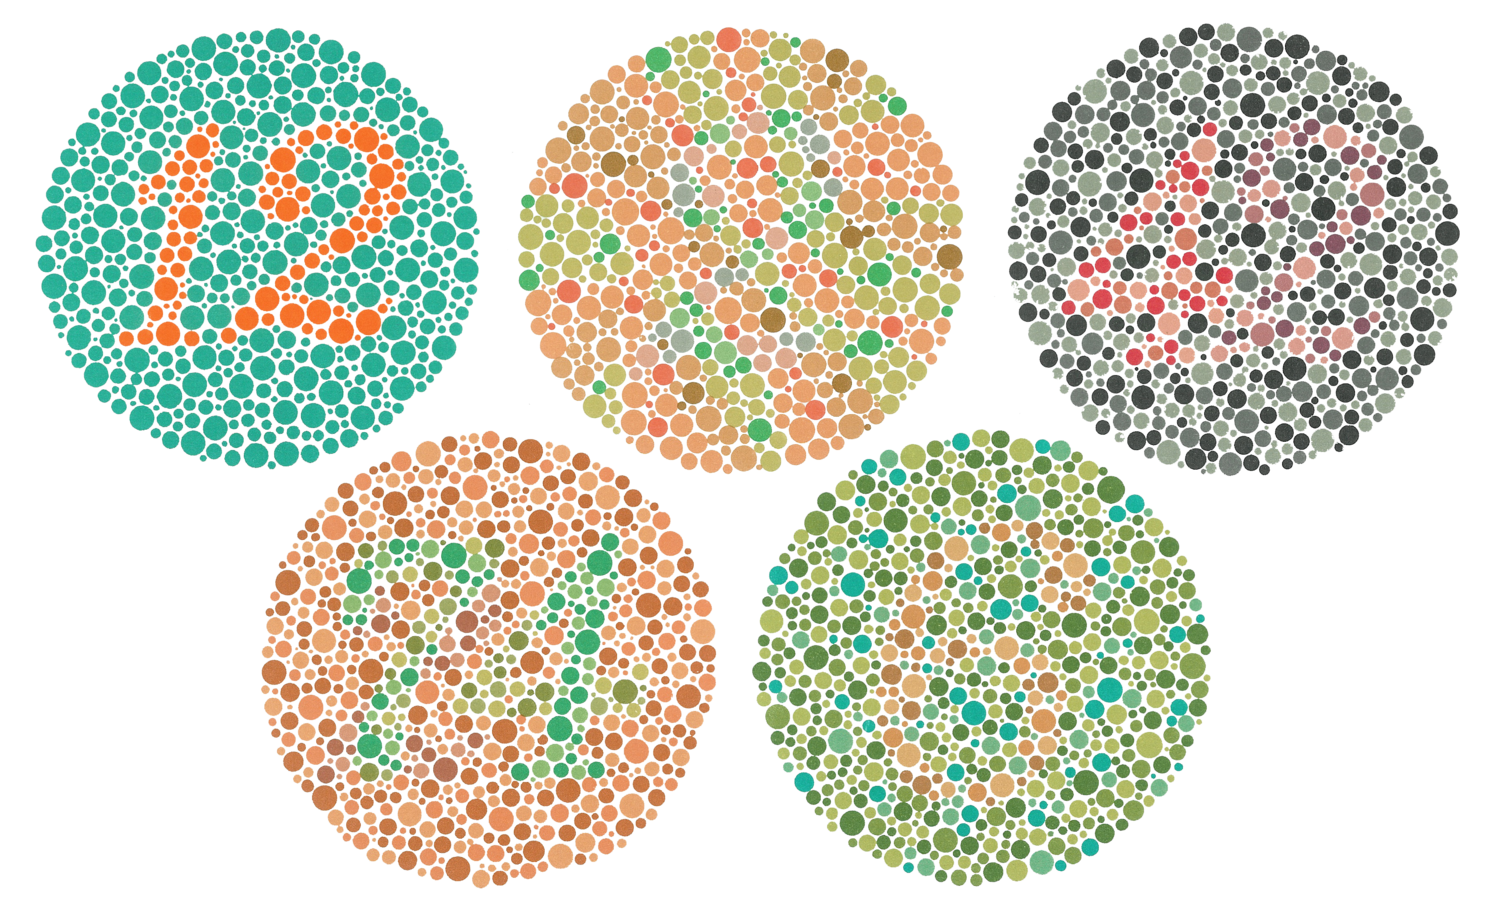 A Scientist Accidentally Developed Sunglasses That Could Correct Color Blindness